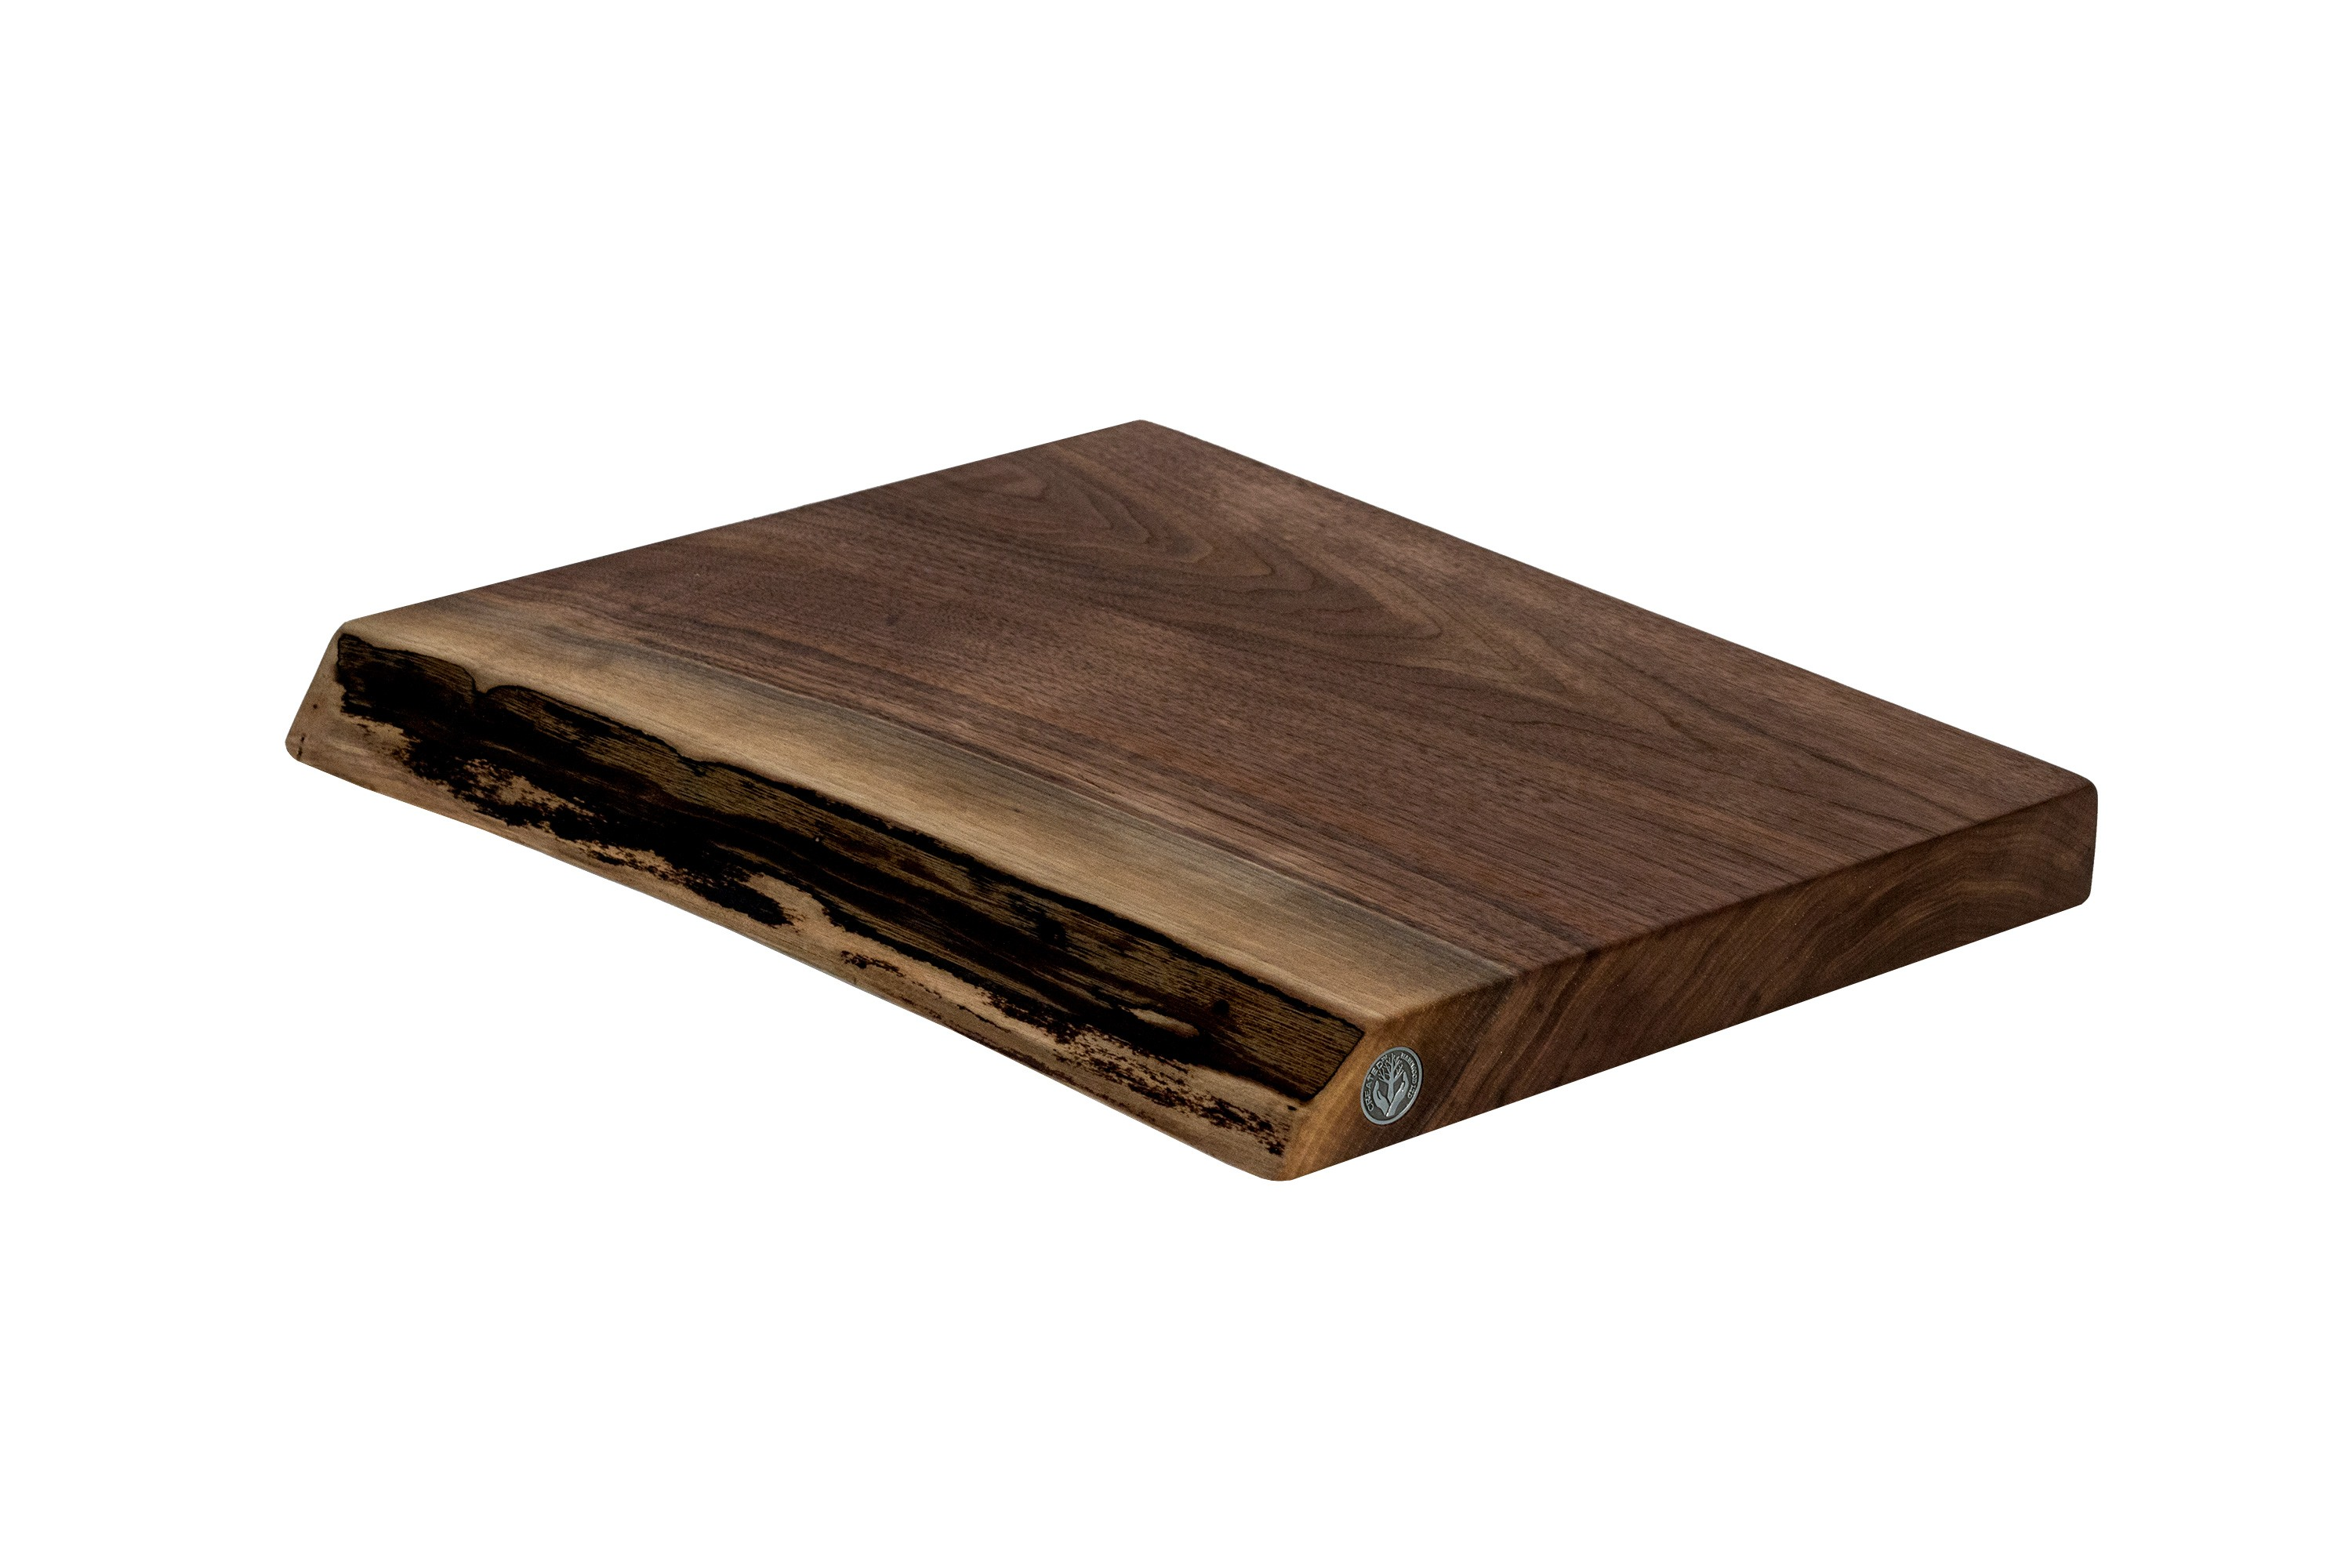 Live Edge Walnut Cutting Board #028 - 20